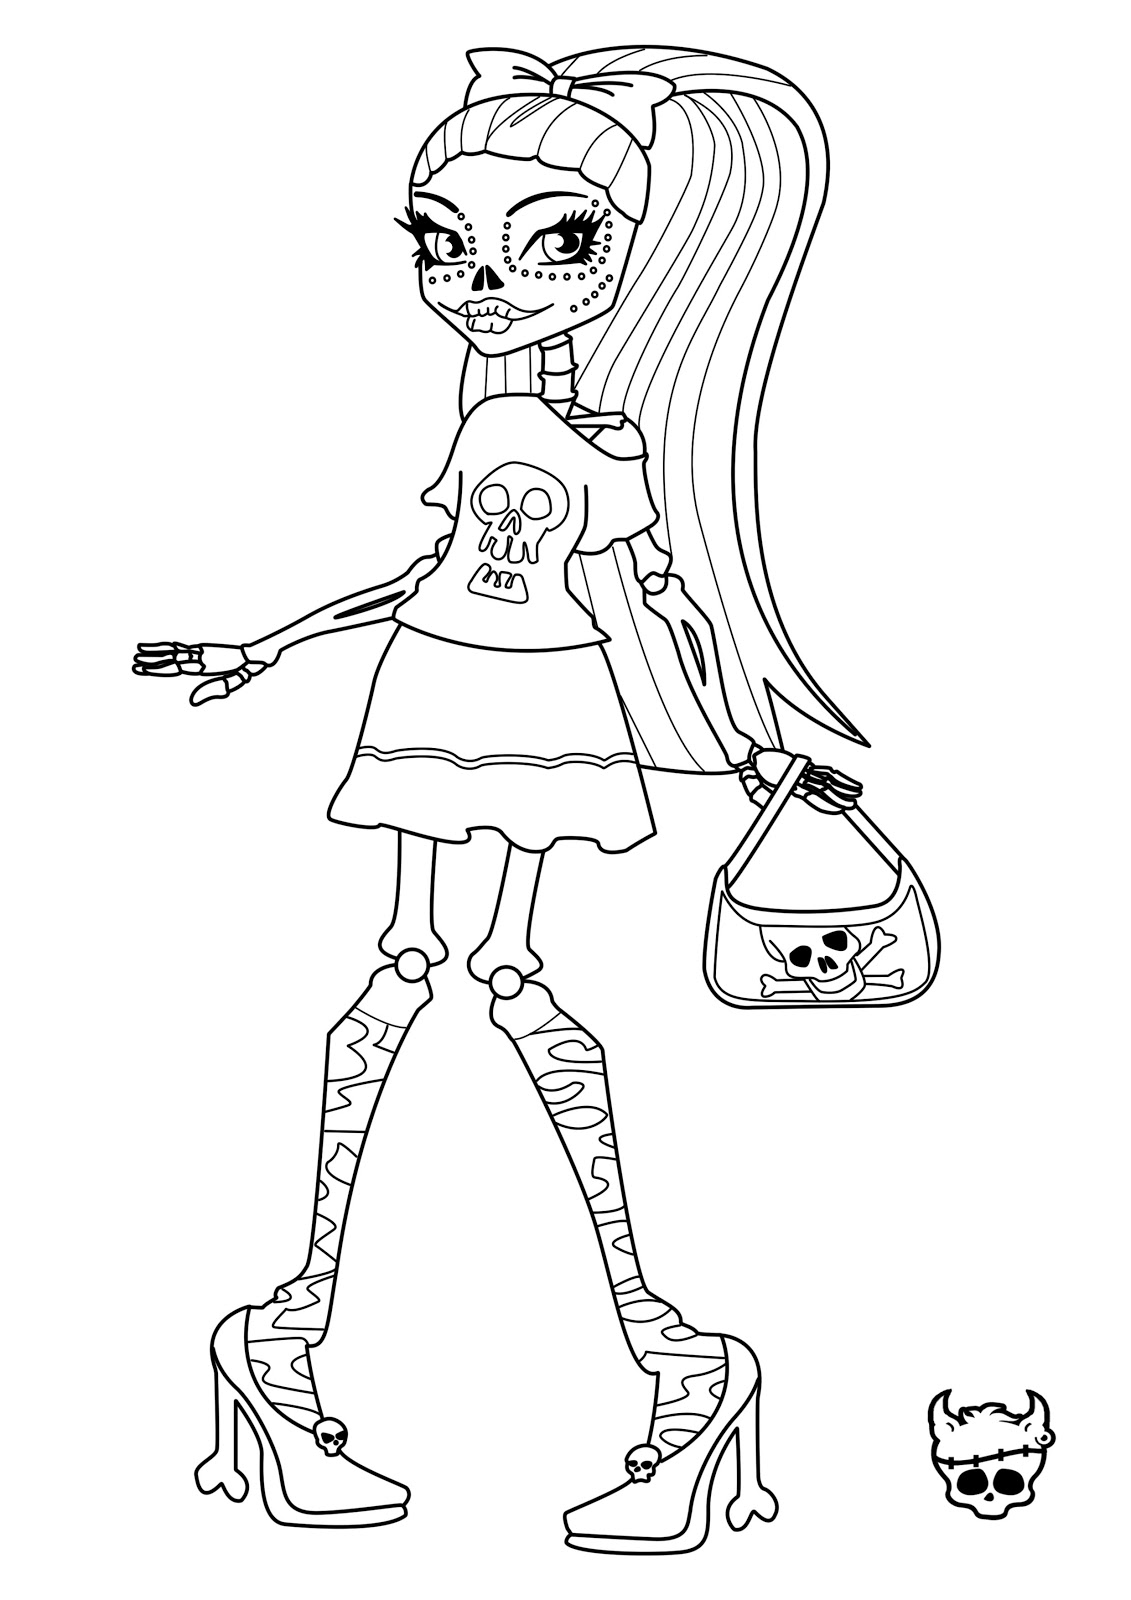 monster high pictures to print free printable monster high coloring pages abbey pictures monster print high to